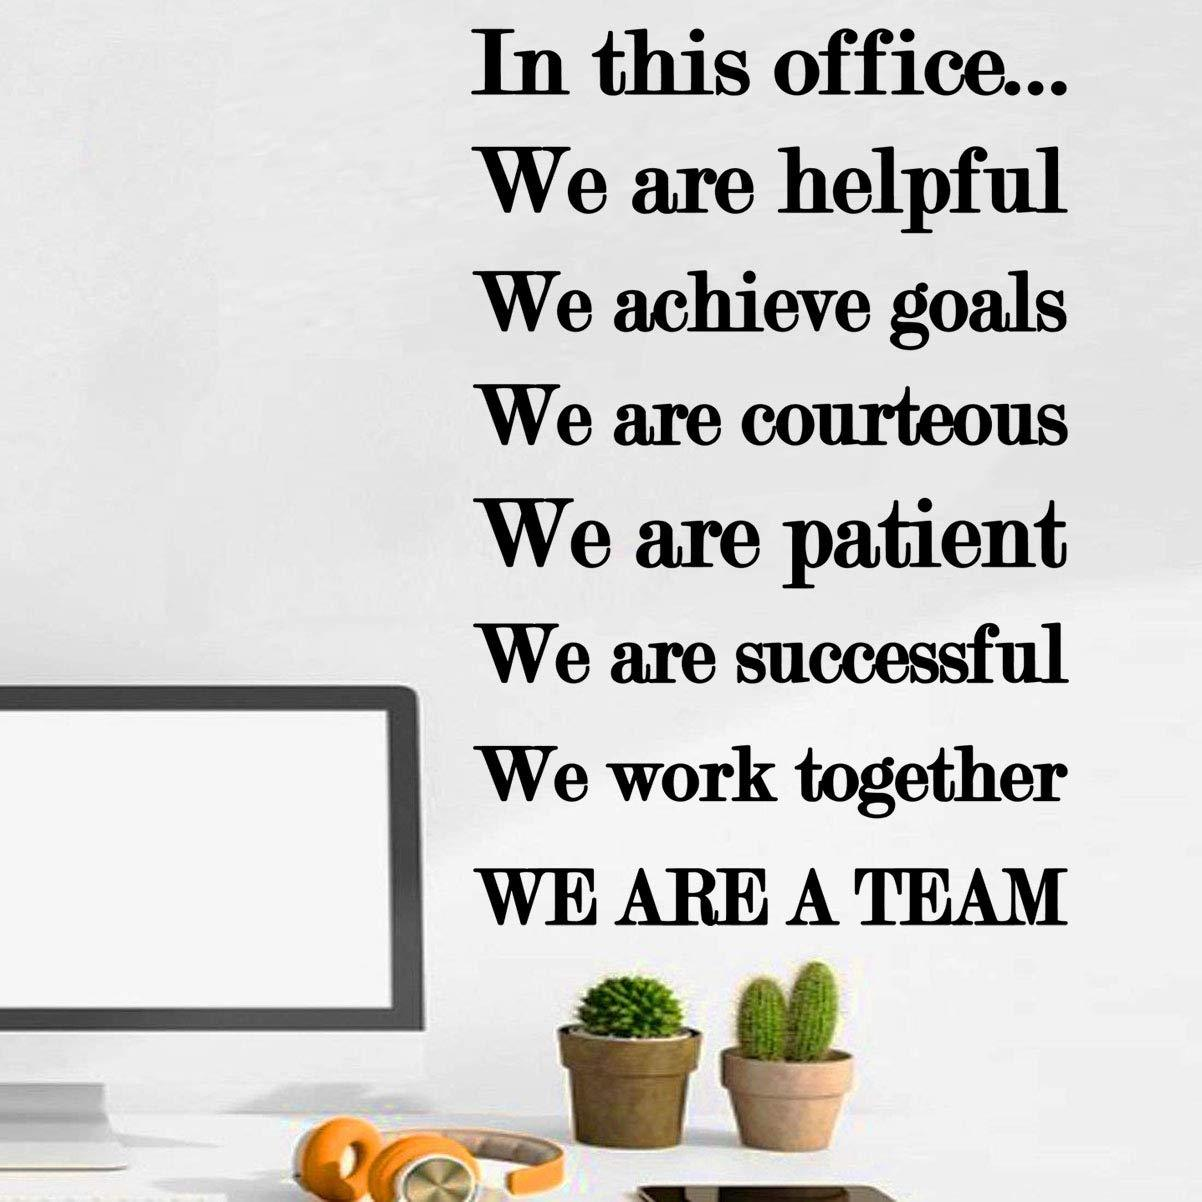 VWAQ in This Office We are Helpful Business Wall Quotes Decal - VWAQ Vinyl Wall Art Quotes and Prints